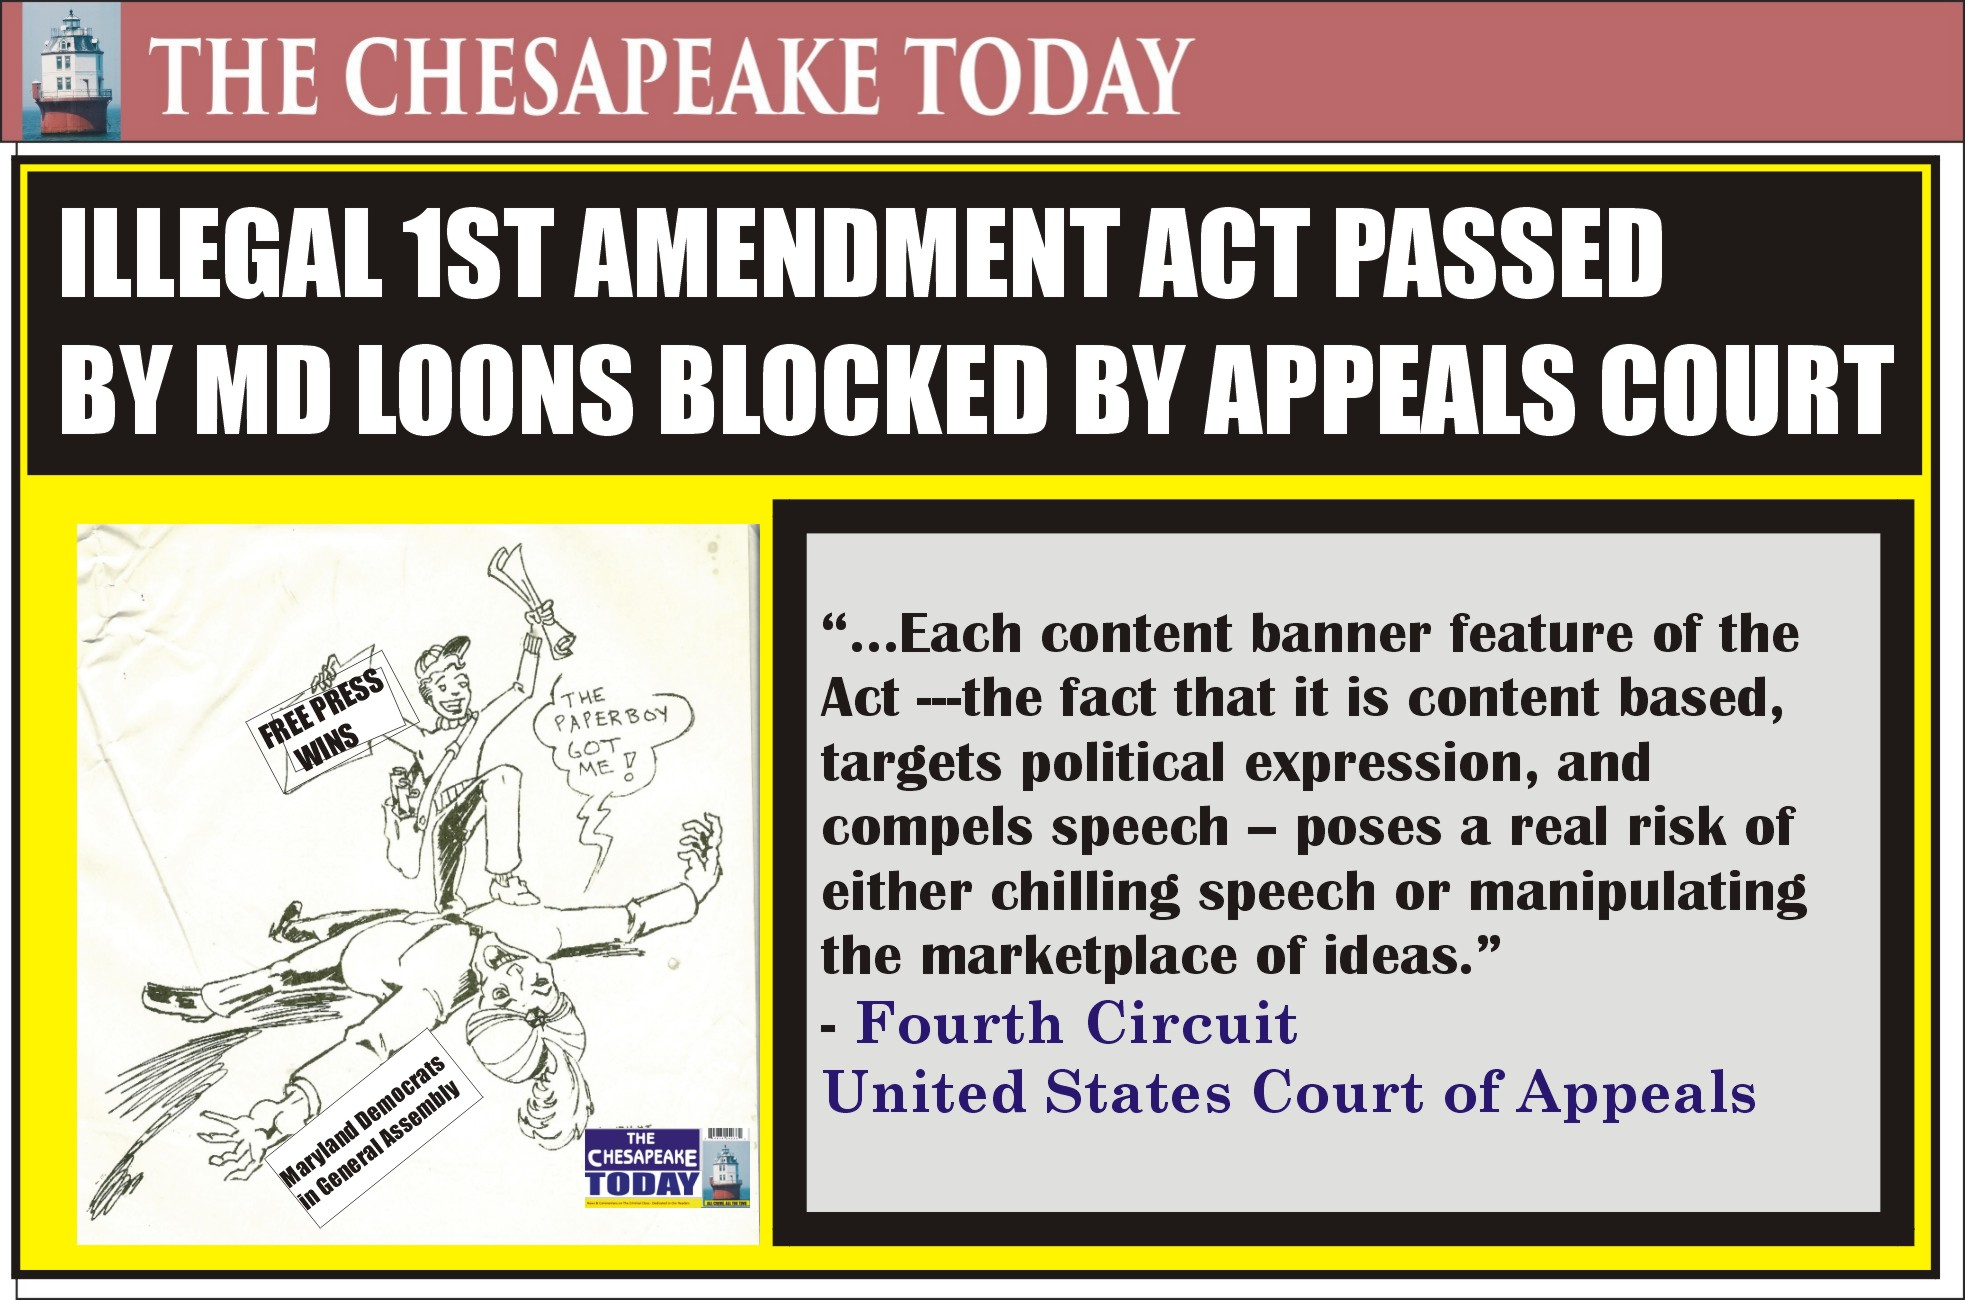 COURT NEWS: U.S. Court of Appeals slams Maryland's looney legislature's unconstitutional attempt to restrict election ads as a violation of 1st Amendment